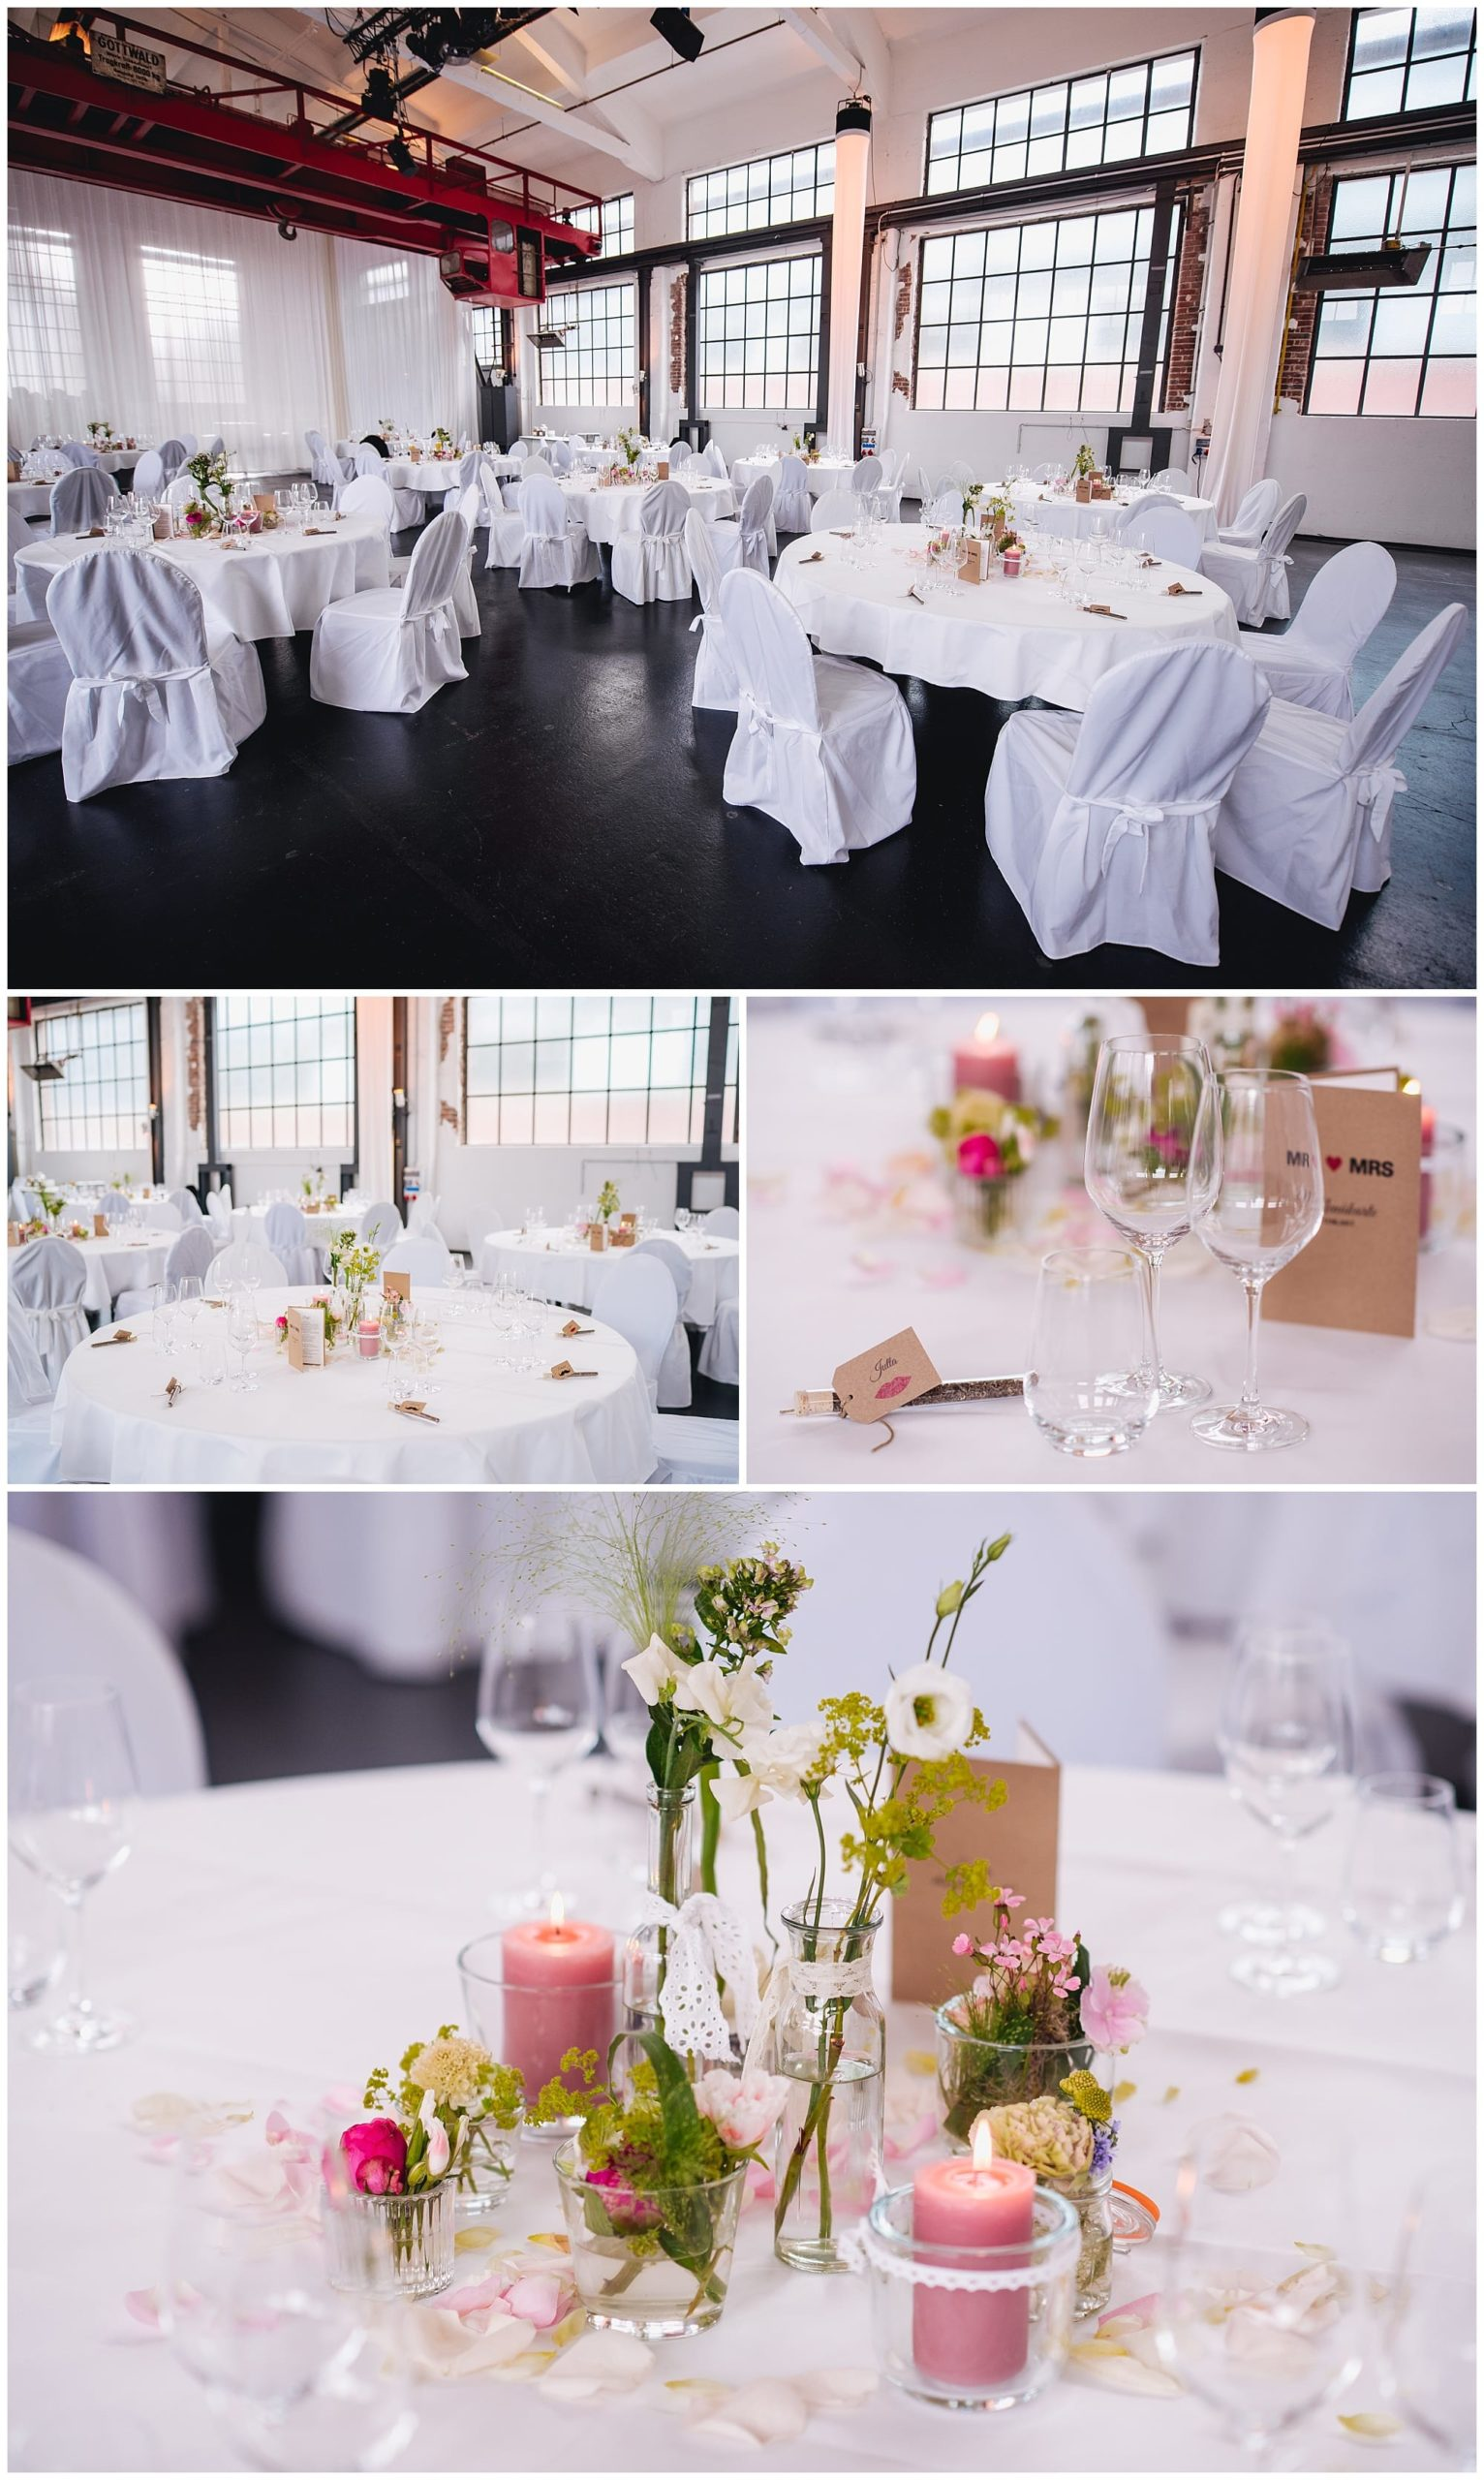 Hochzeit Areal Boehler - Christina Louise Photography